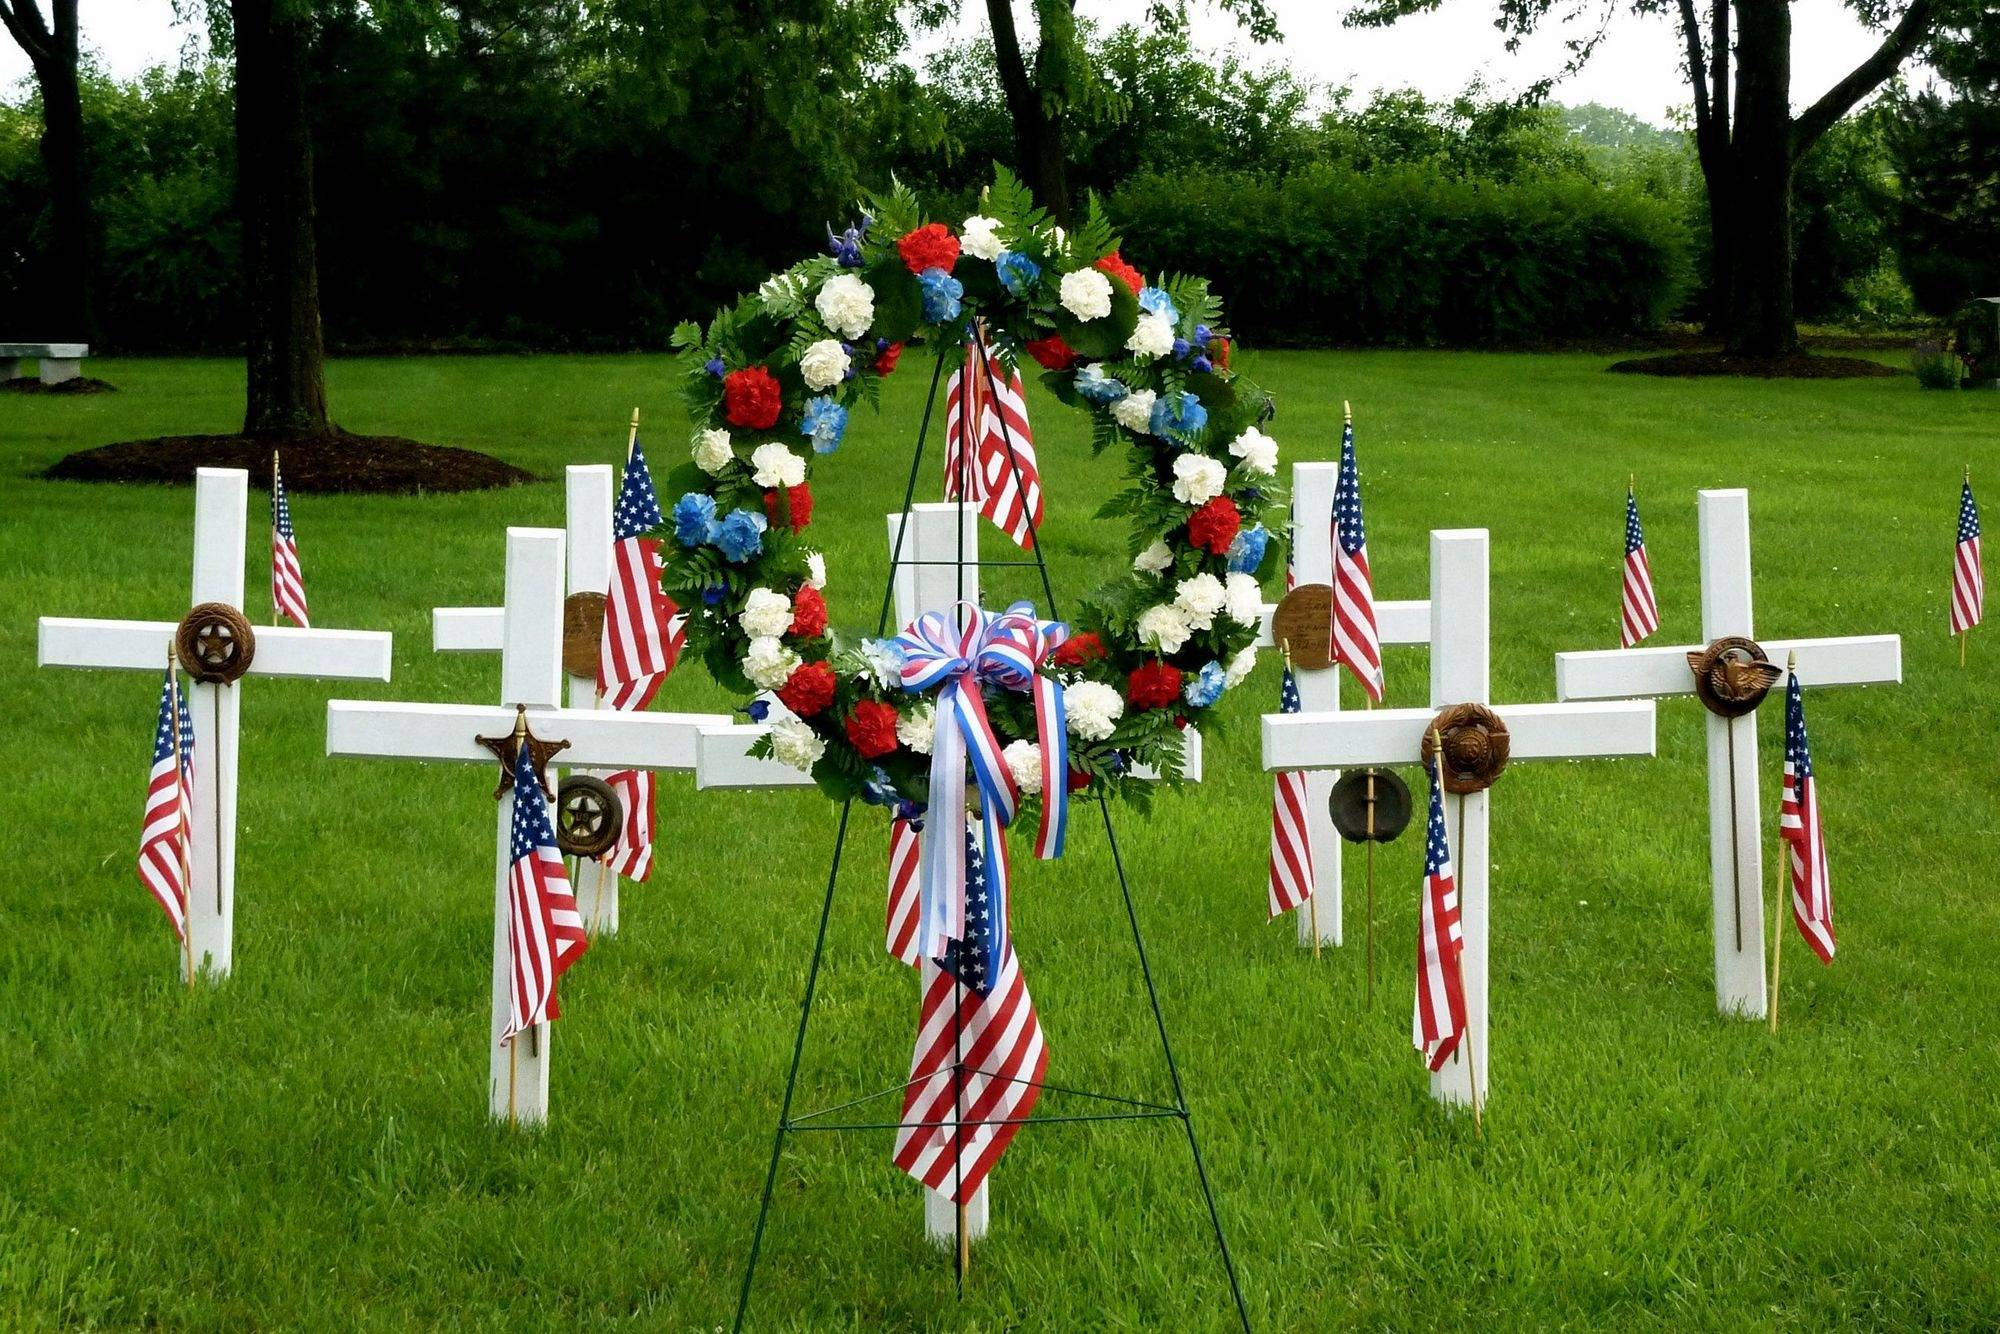 Memorial display items were placed at Trinity Lutheran Cemetery in Roselle as part of the Memorial Day service conducted by American Legion Post 1084. The crosses carry medallions representing military service.